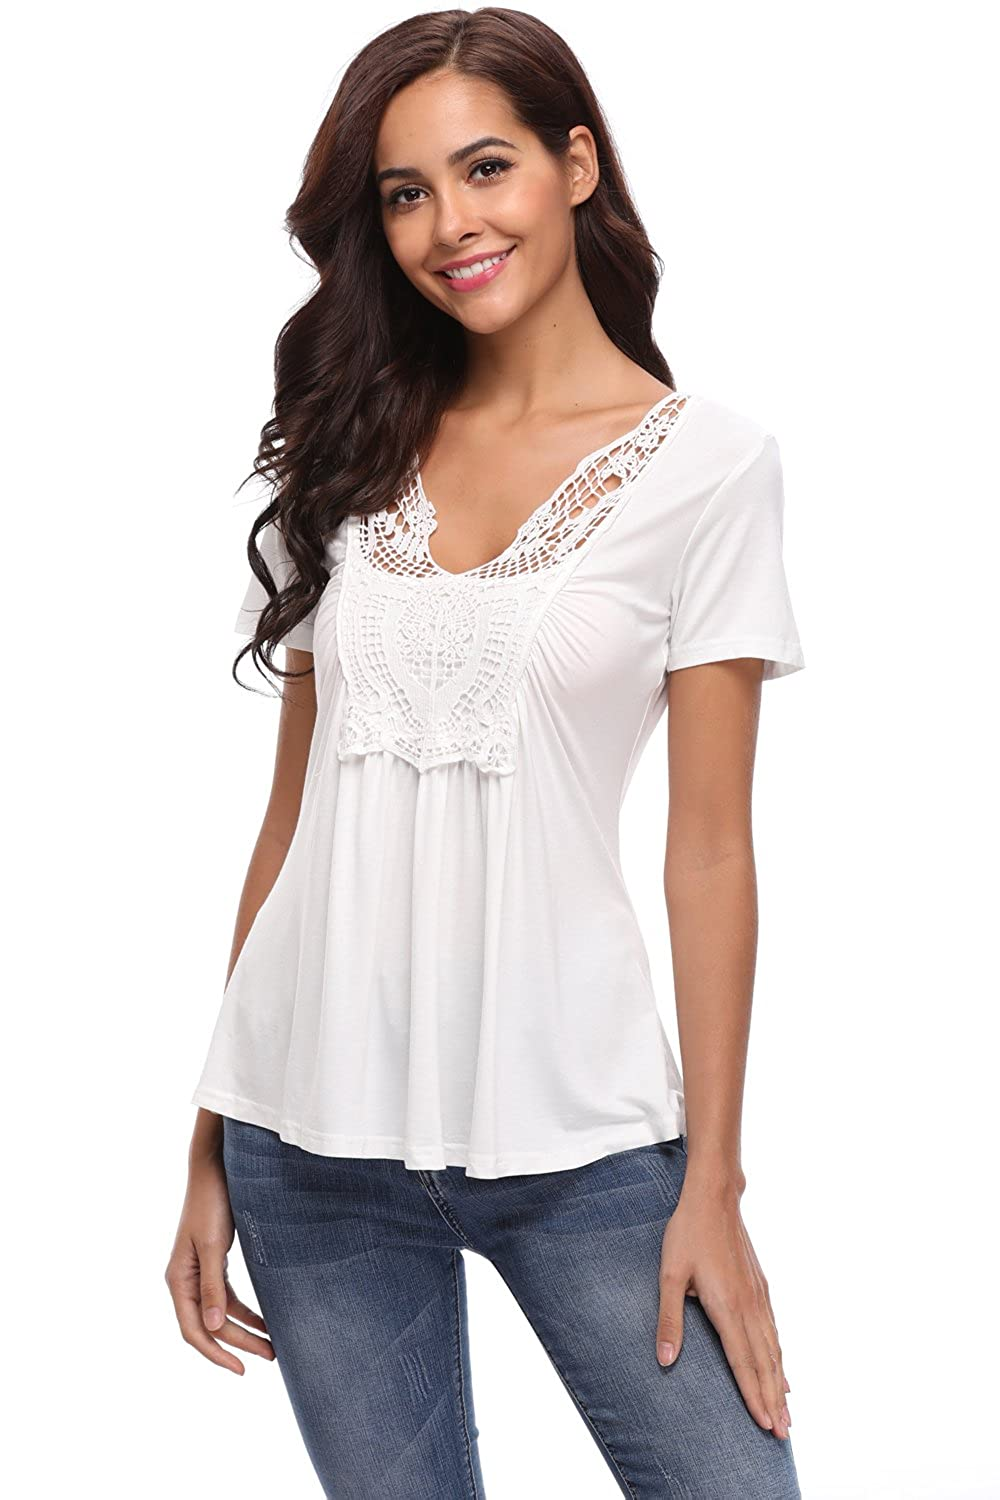 c1a9b409eb7 MISS MOLY Women's Summer Peplum Tops Deep V-Neck Low Cut Ruched Front Short  Sleeve Ruffle Blouse(XS-4XL) at Amazon Women's Clothing store: